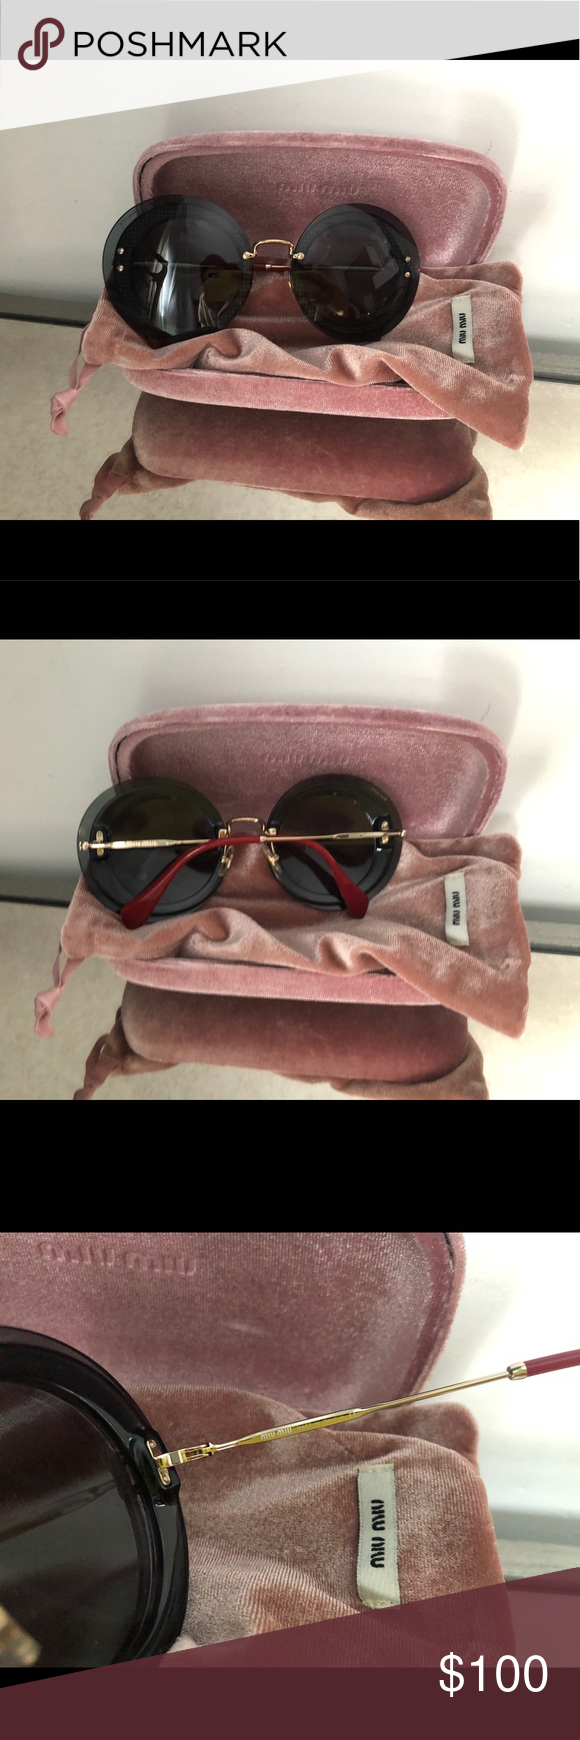 c3be6c18799 Mui Mui Round sunglasses Mui Mui Round sunglasses pre-loved and only used  about 2-3 times great condition....... Miu Miu Accessories Sunglasses